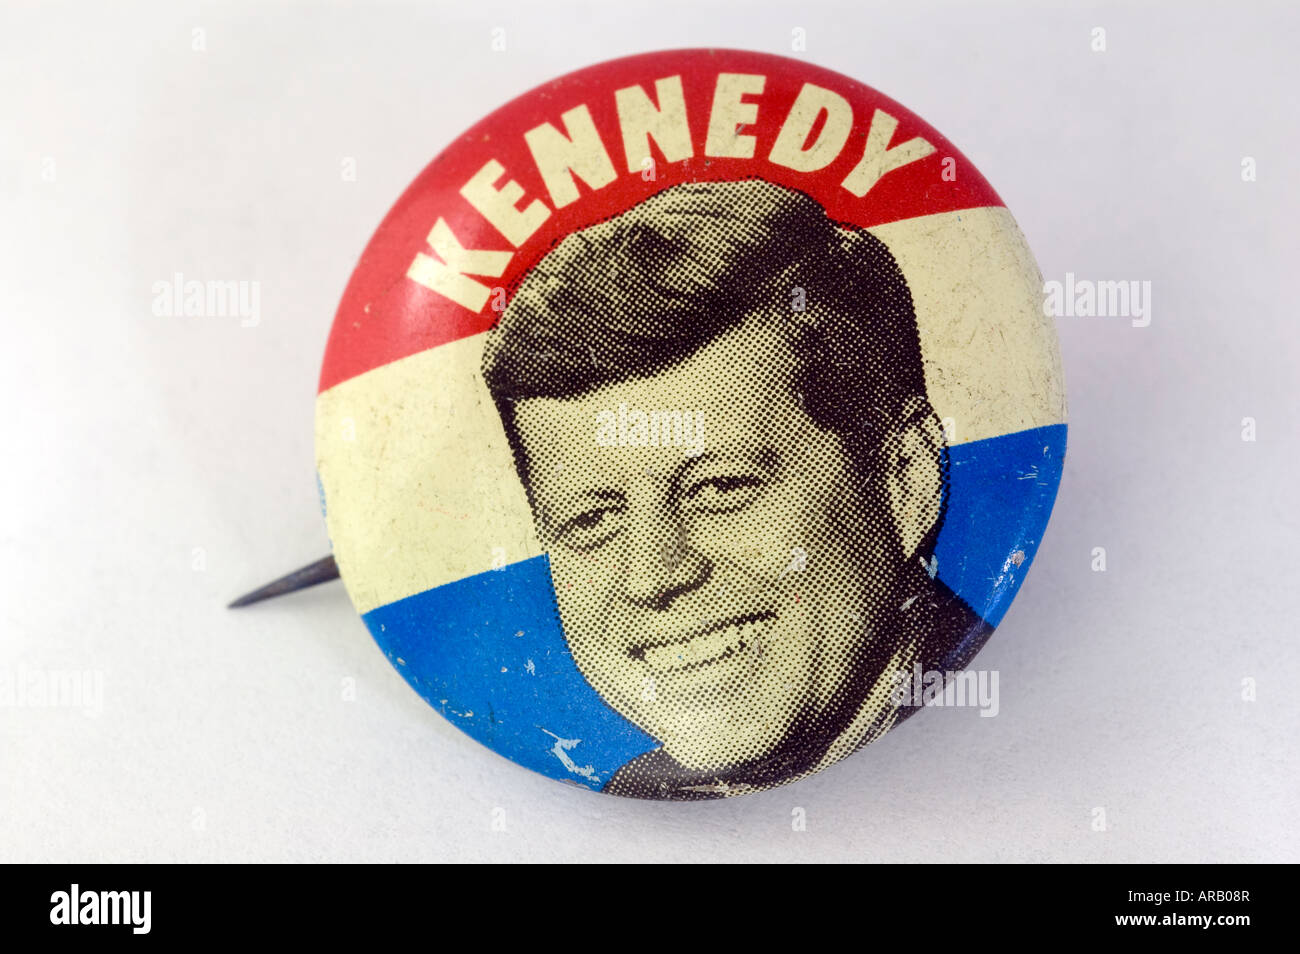 A John F Kennedy campaign button from the 1960 US presidential campaign - Stock Image